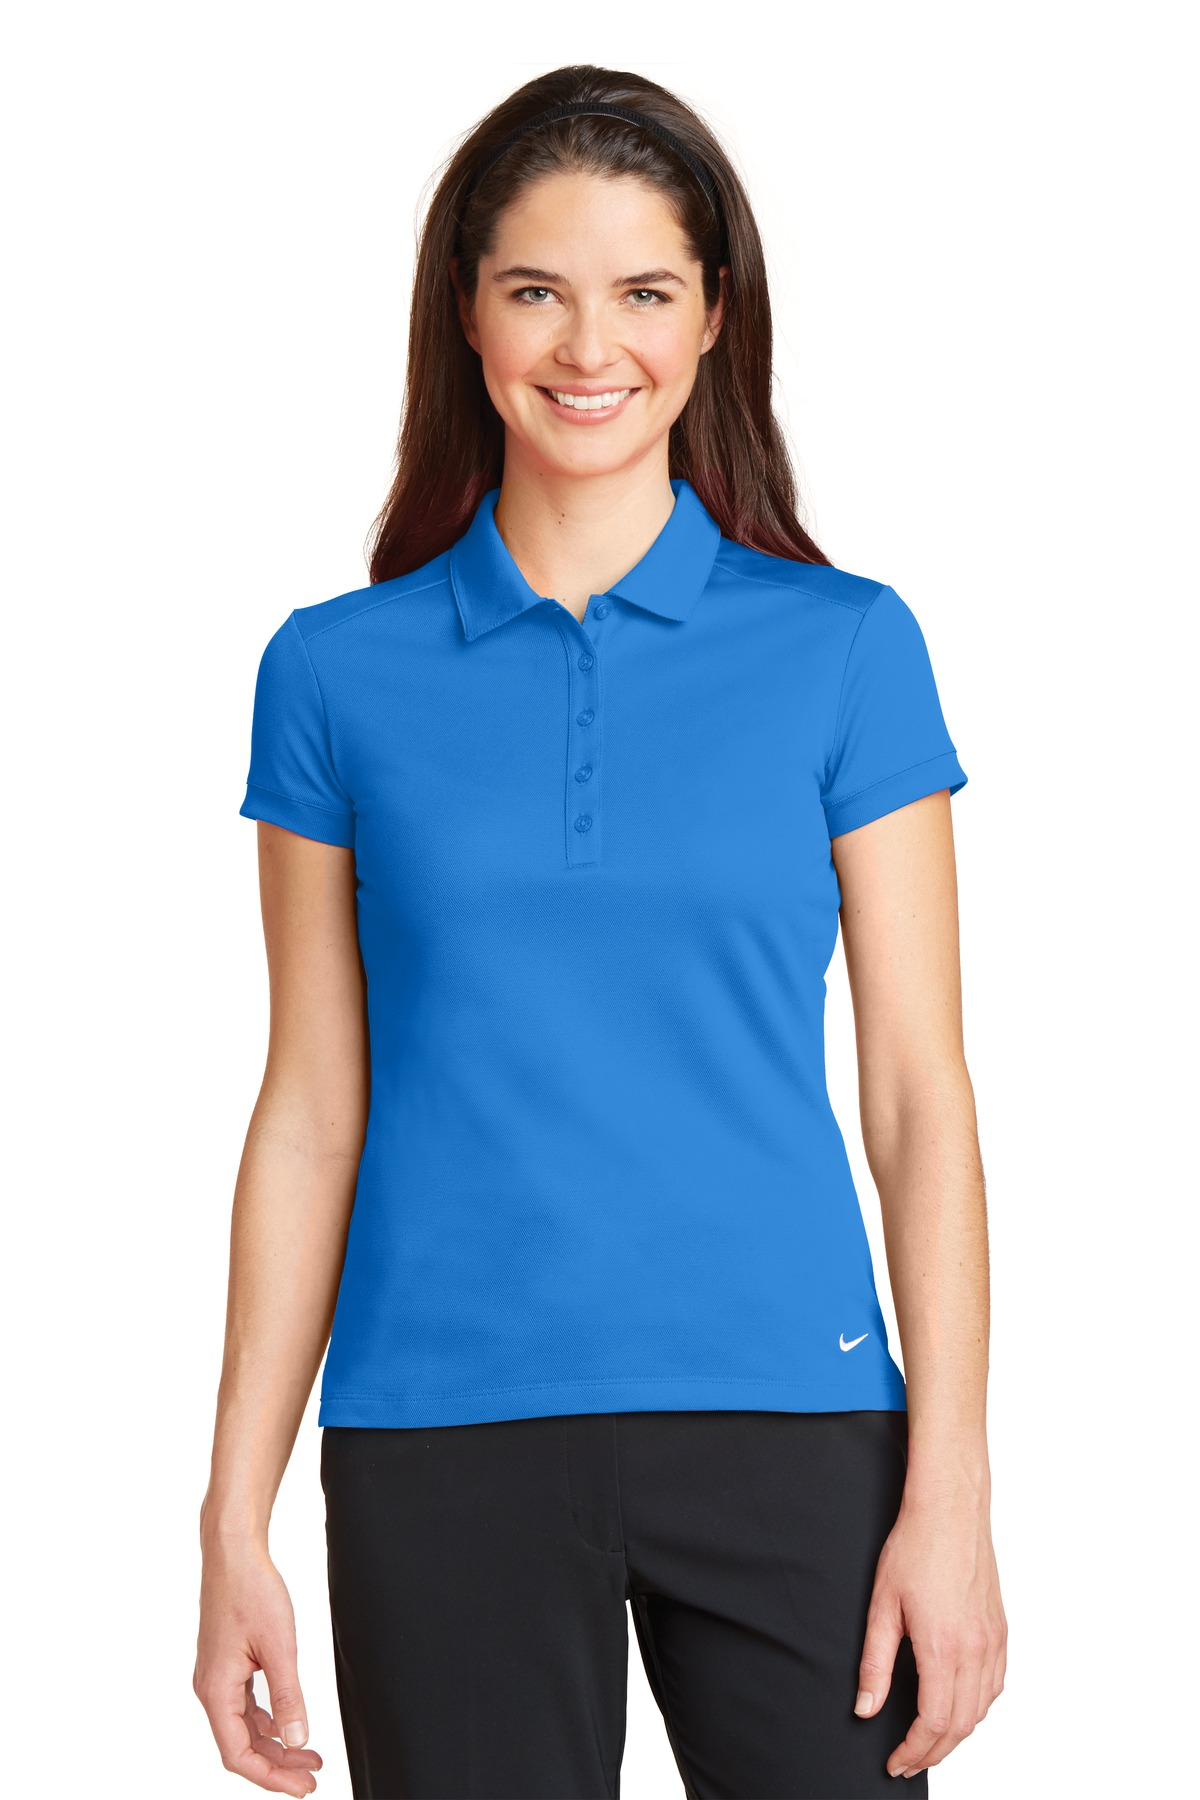 Nike Golf 746100 - Ladies Dri-FIT Solid Icon Pique Polo - Women s T ... b63d8a17cd3